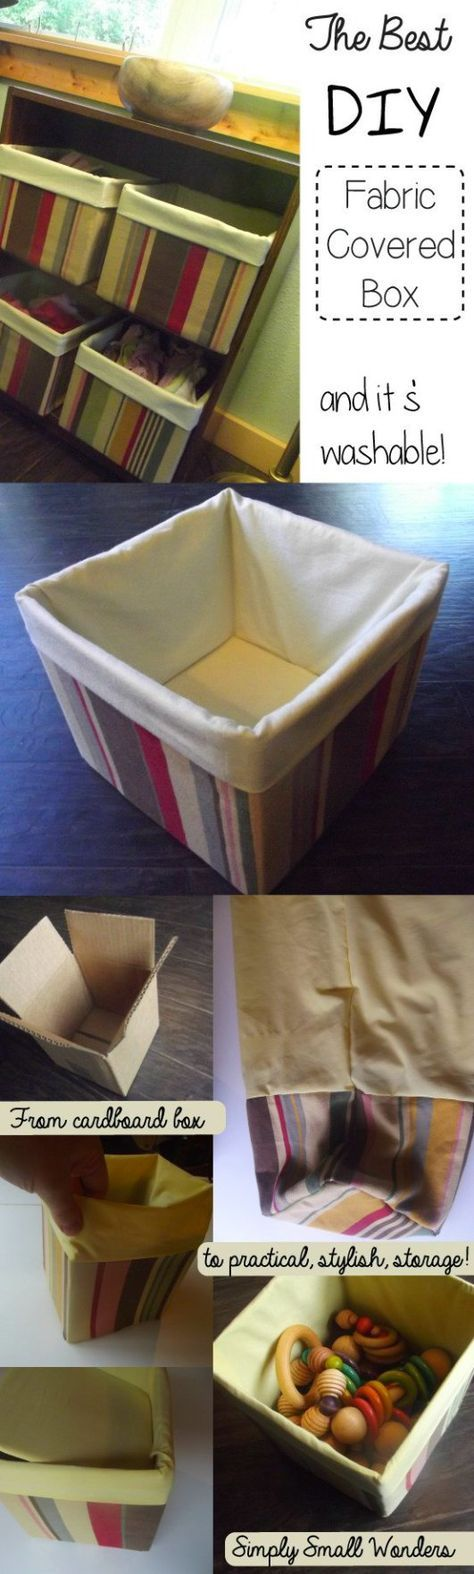 Fabric covered boxes with removable covers. Quick, cheap, easy storage ideas using a regular cardboard box.